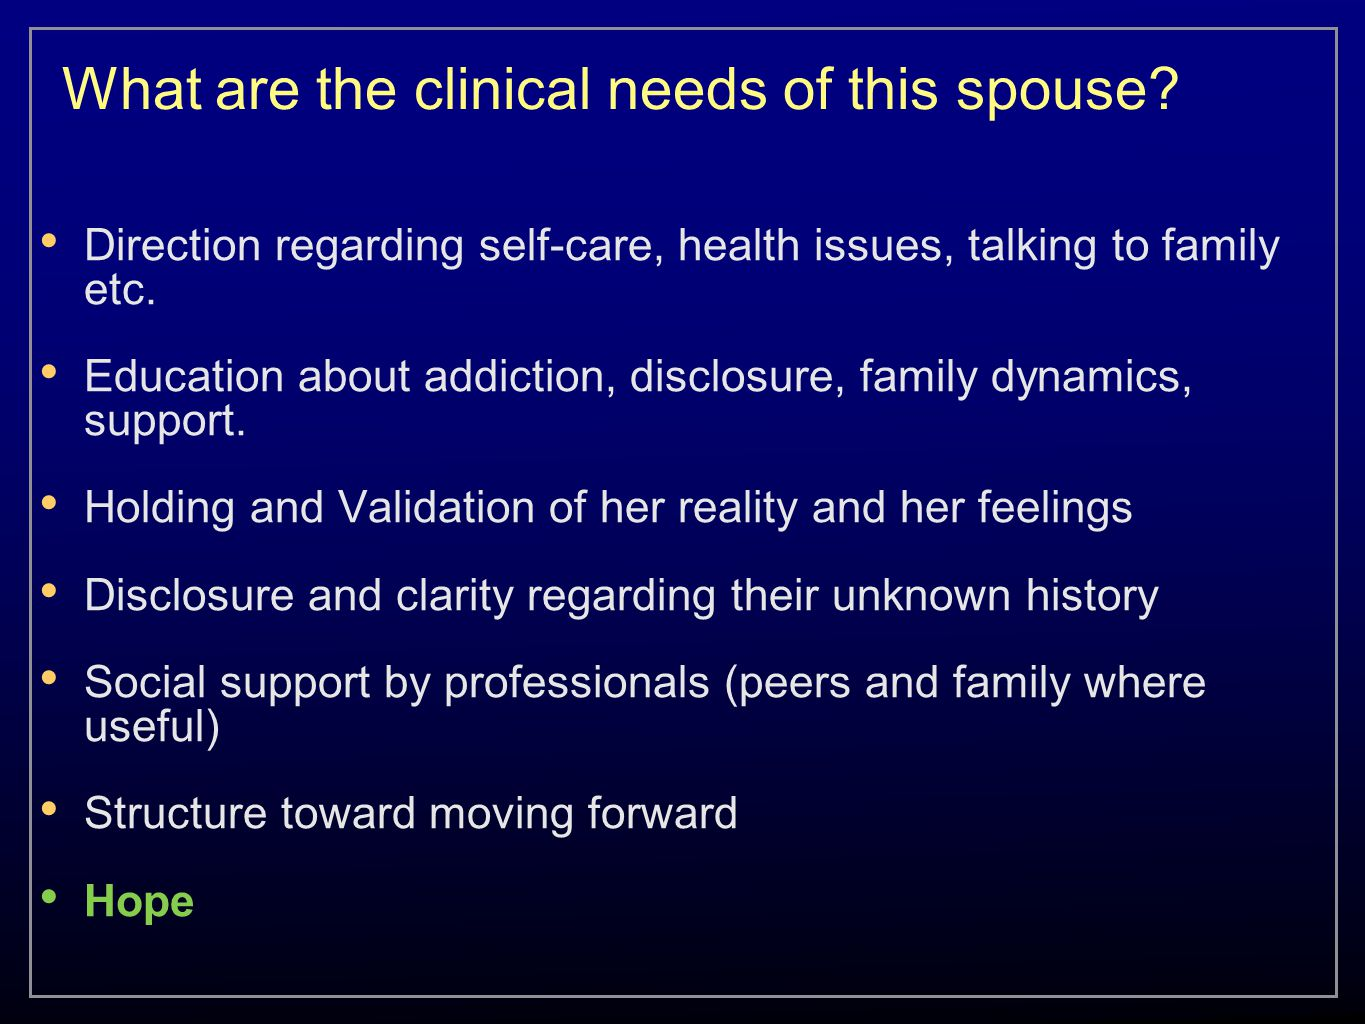 What are the clinical needs of this spouse? Direction regarding self-care, health issues, talking to family etc. Education about addiction, disclosure